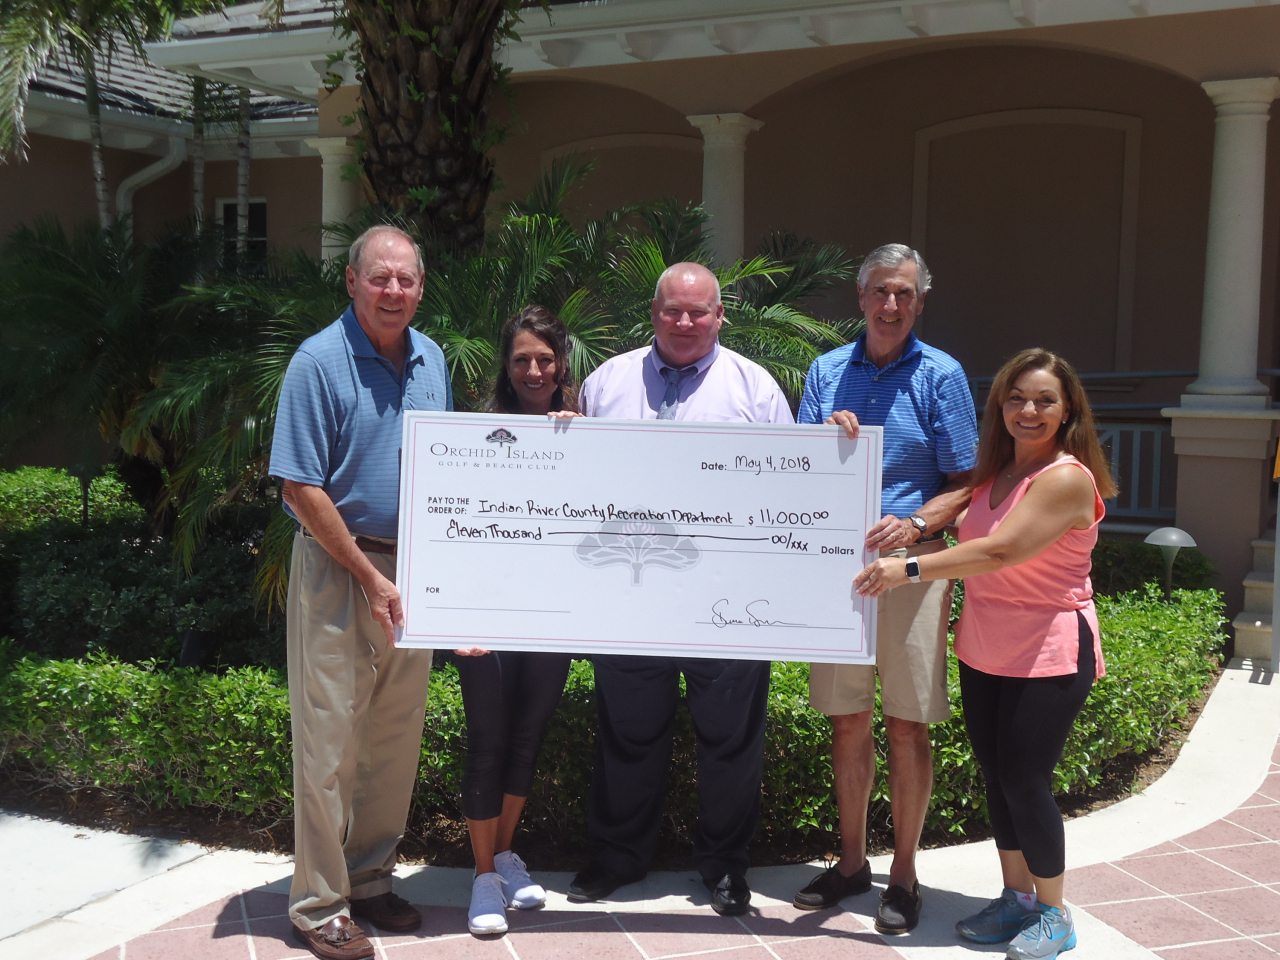 Pictured from left to right:  Jim Gaede, (Orchid Island President of the Board of Governors), Denise Duda (OI Director of Fitness, Wellness & Spa), Mike Redstone (Recreation Director of the IRC Recreation Department), Bruce Morrison (OI Tennis & Fitness  Committee Chair) and Micki Weilbaker (OI Fitness Manager)